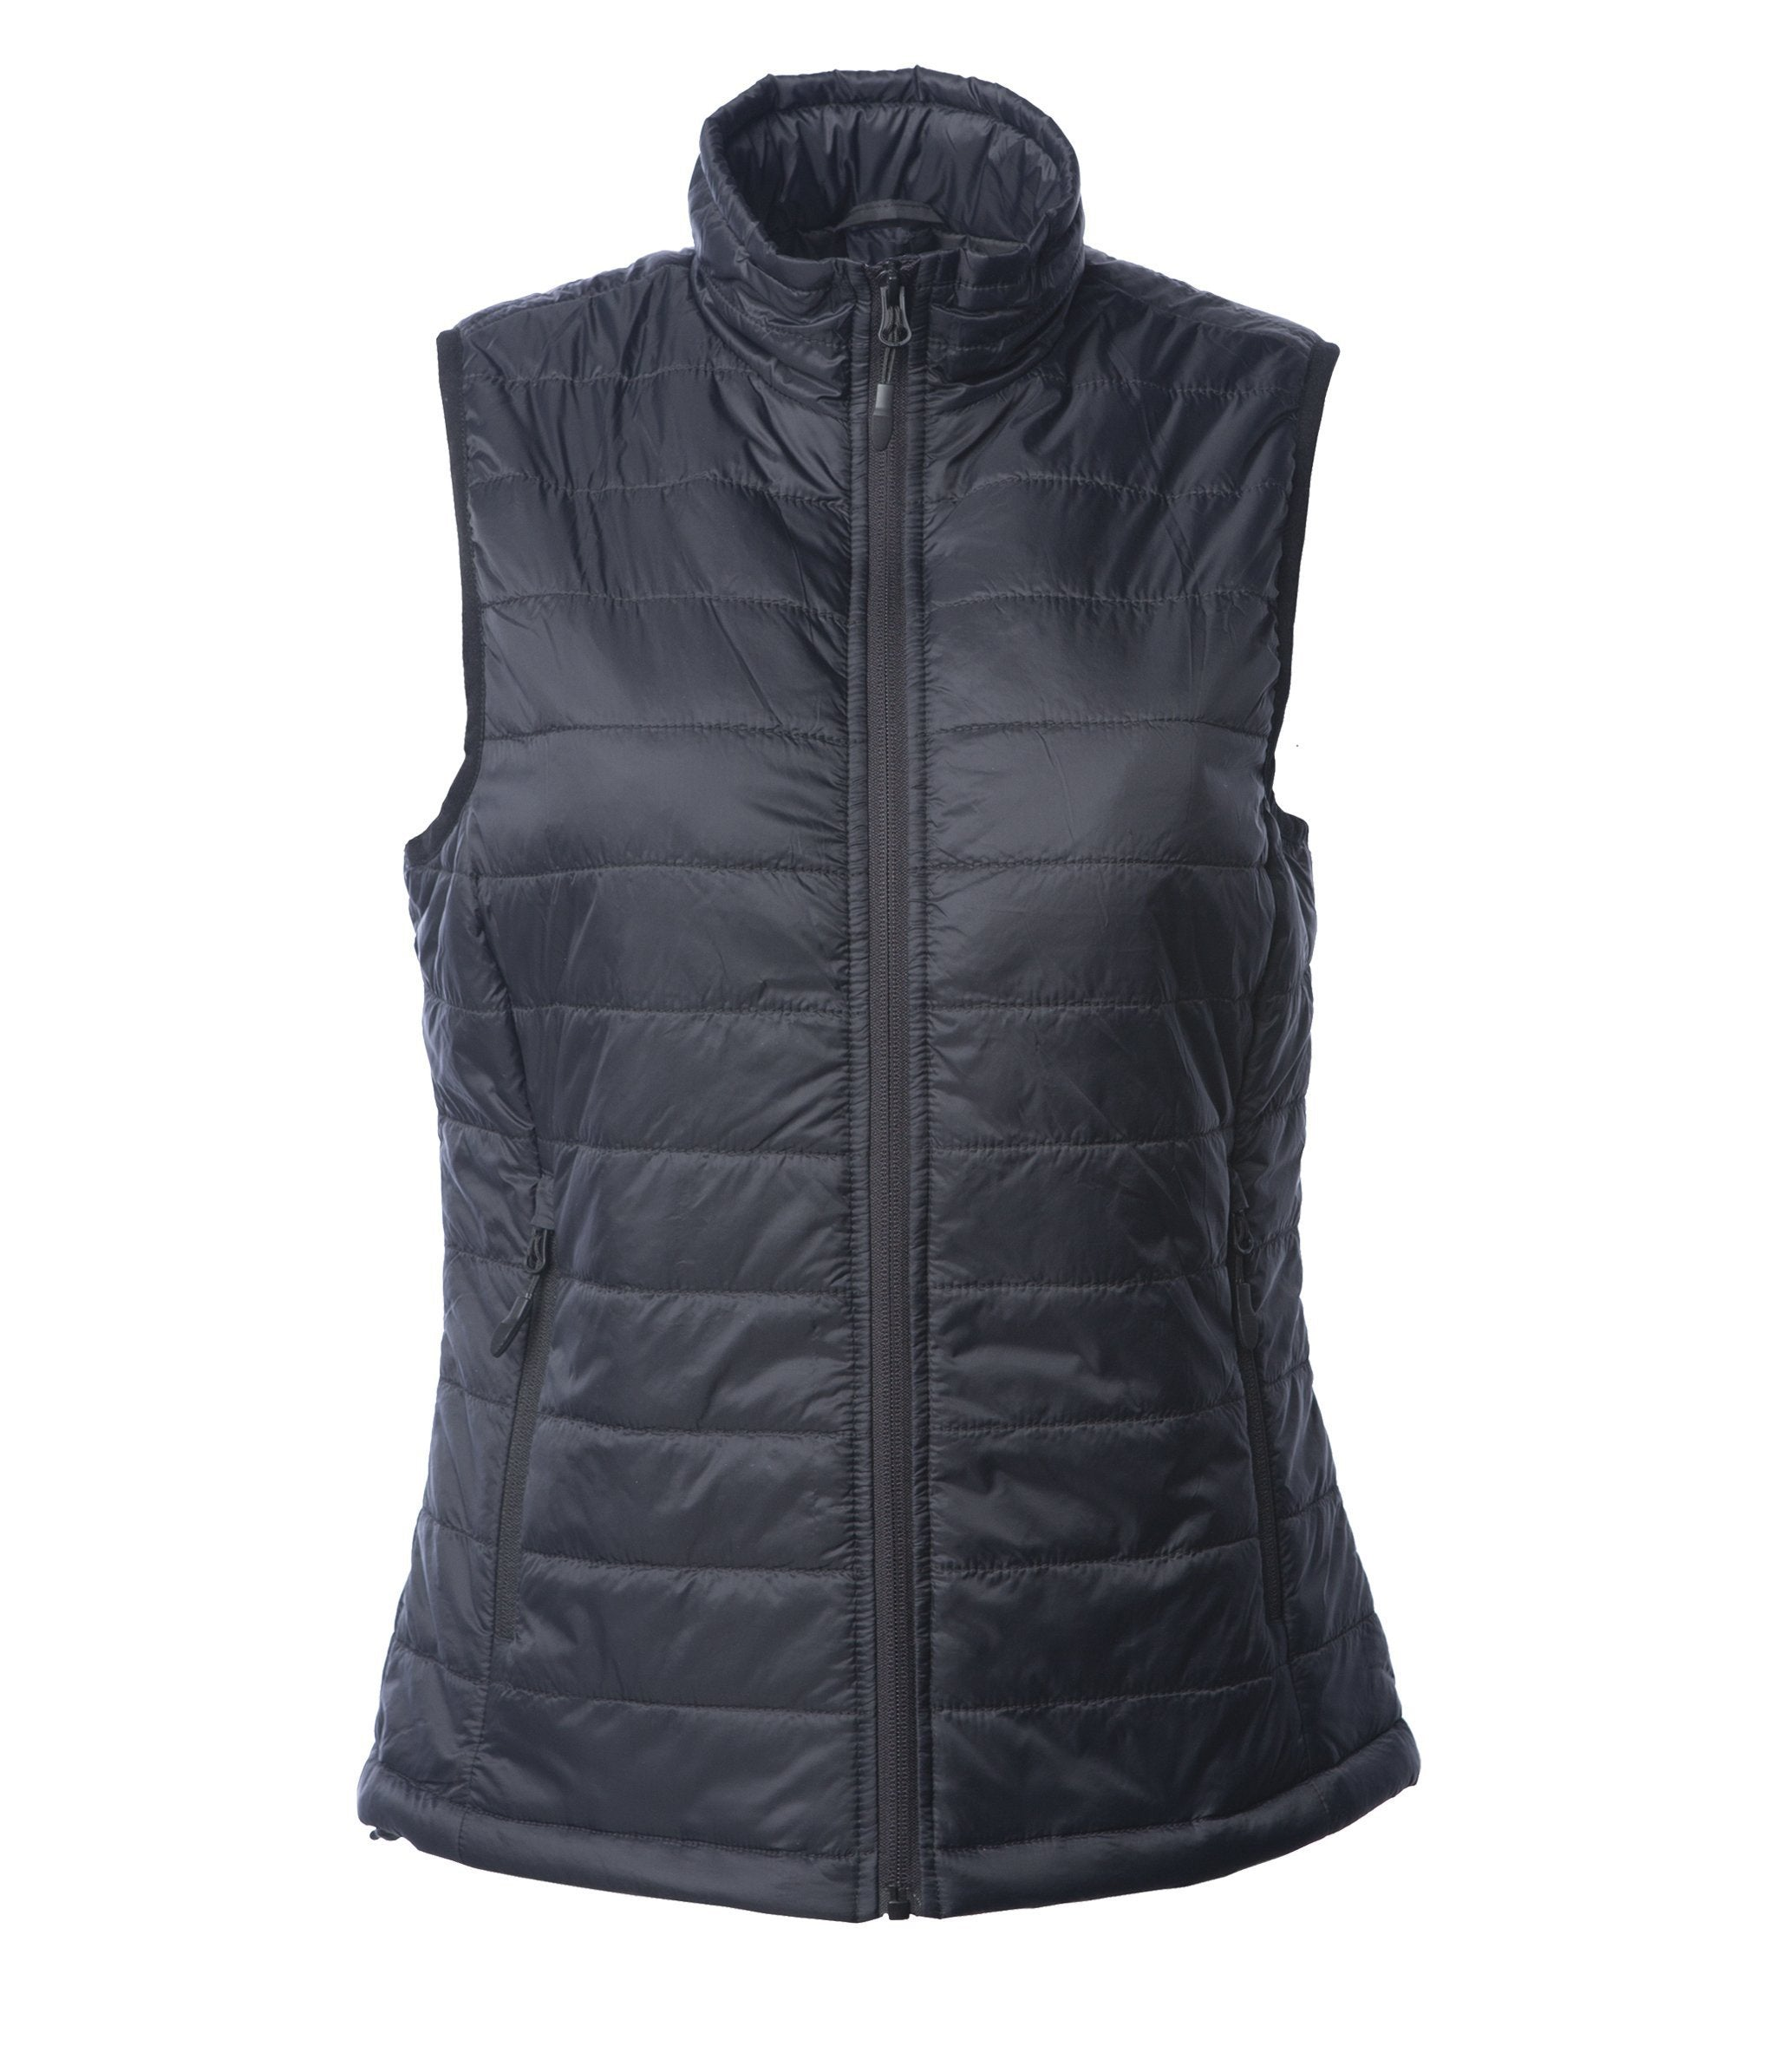 World Changing Women's Hyper-Loft Packable Puffer Vest